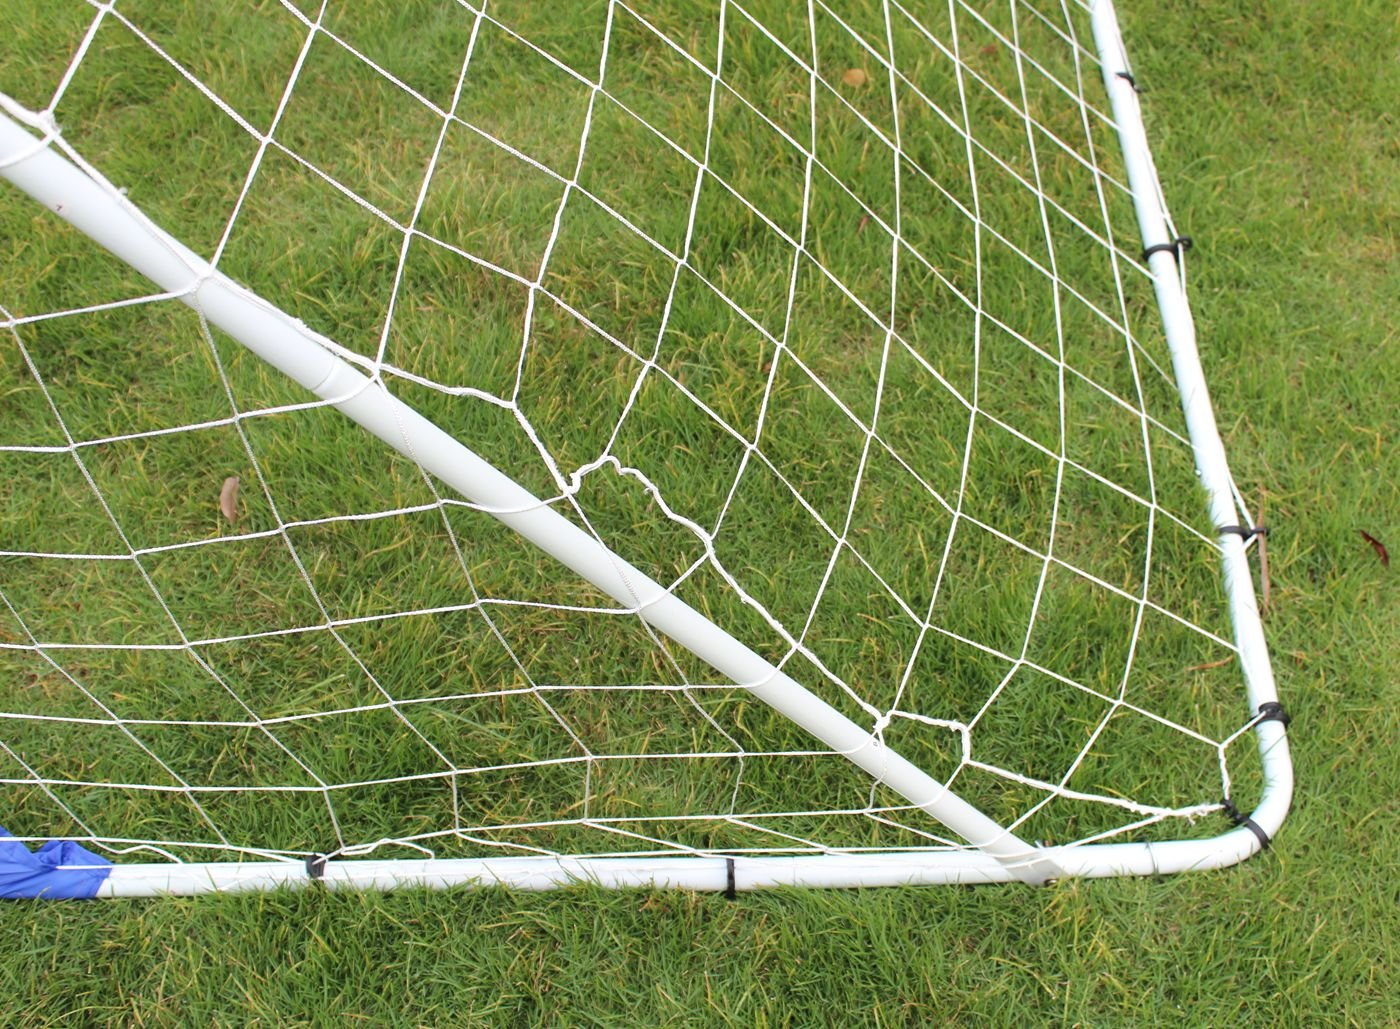 KLB Sport 8' x 5' Steel Soccer Goal - Portable Soccer Net with Carry Bag by KLB Sport (Image #4)